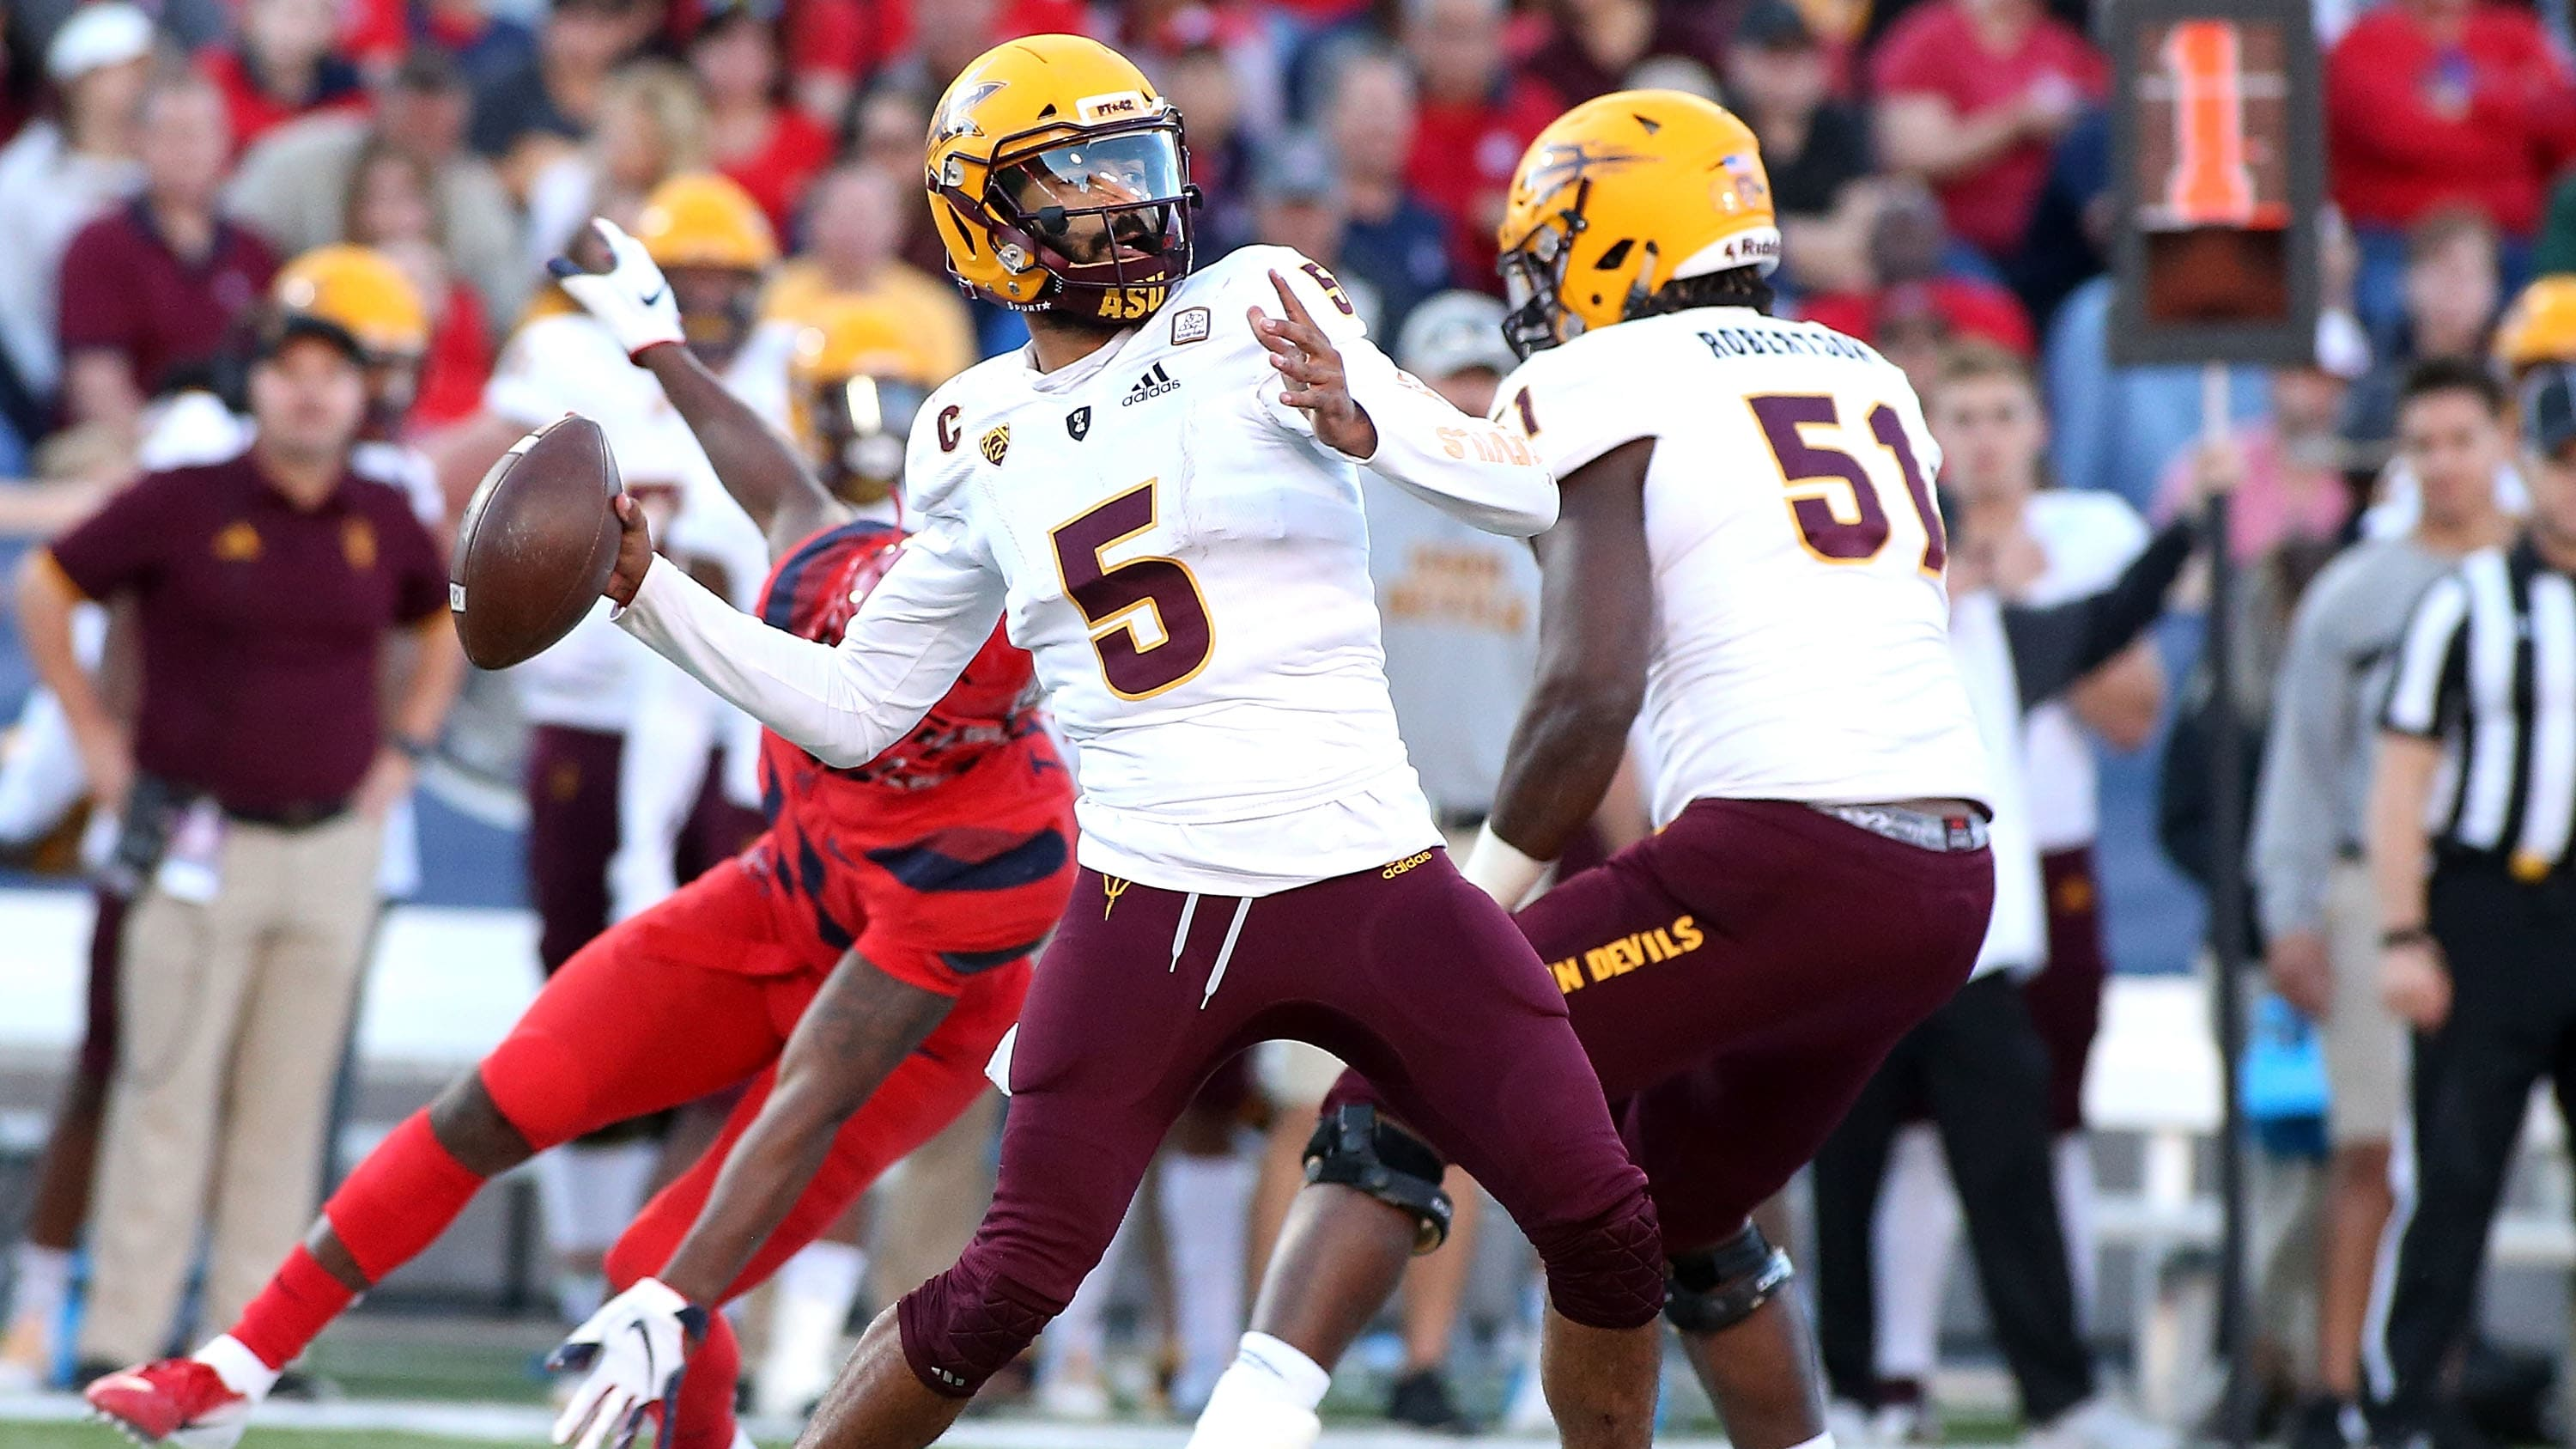 TUCSON, AZ - NOVEMBER 24:  Quarterback Manny Wilkins #5 of the Arizona State Sun Devils throws a pass against the Arizona Wildcats during the second half of the college football game at Arizona Stadium on November 24, 2018 in Tucson, Arizona.  (Photo by Ralph Freso/Getty Images)